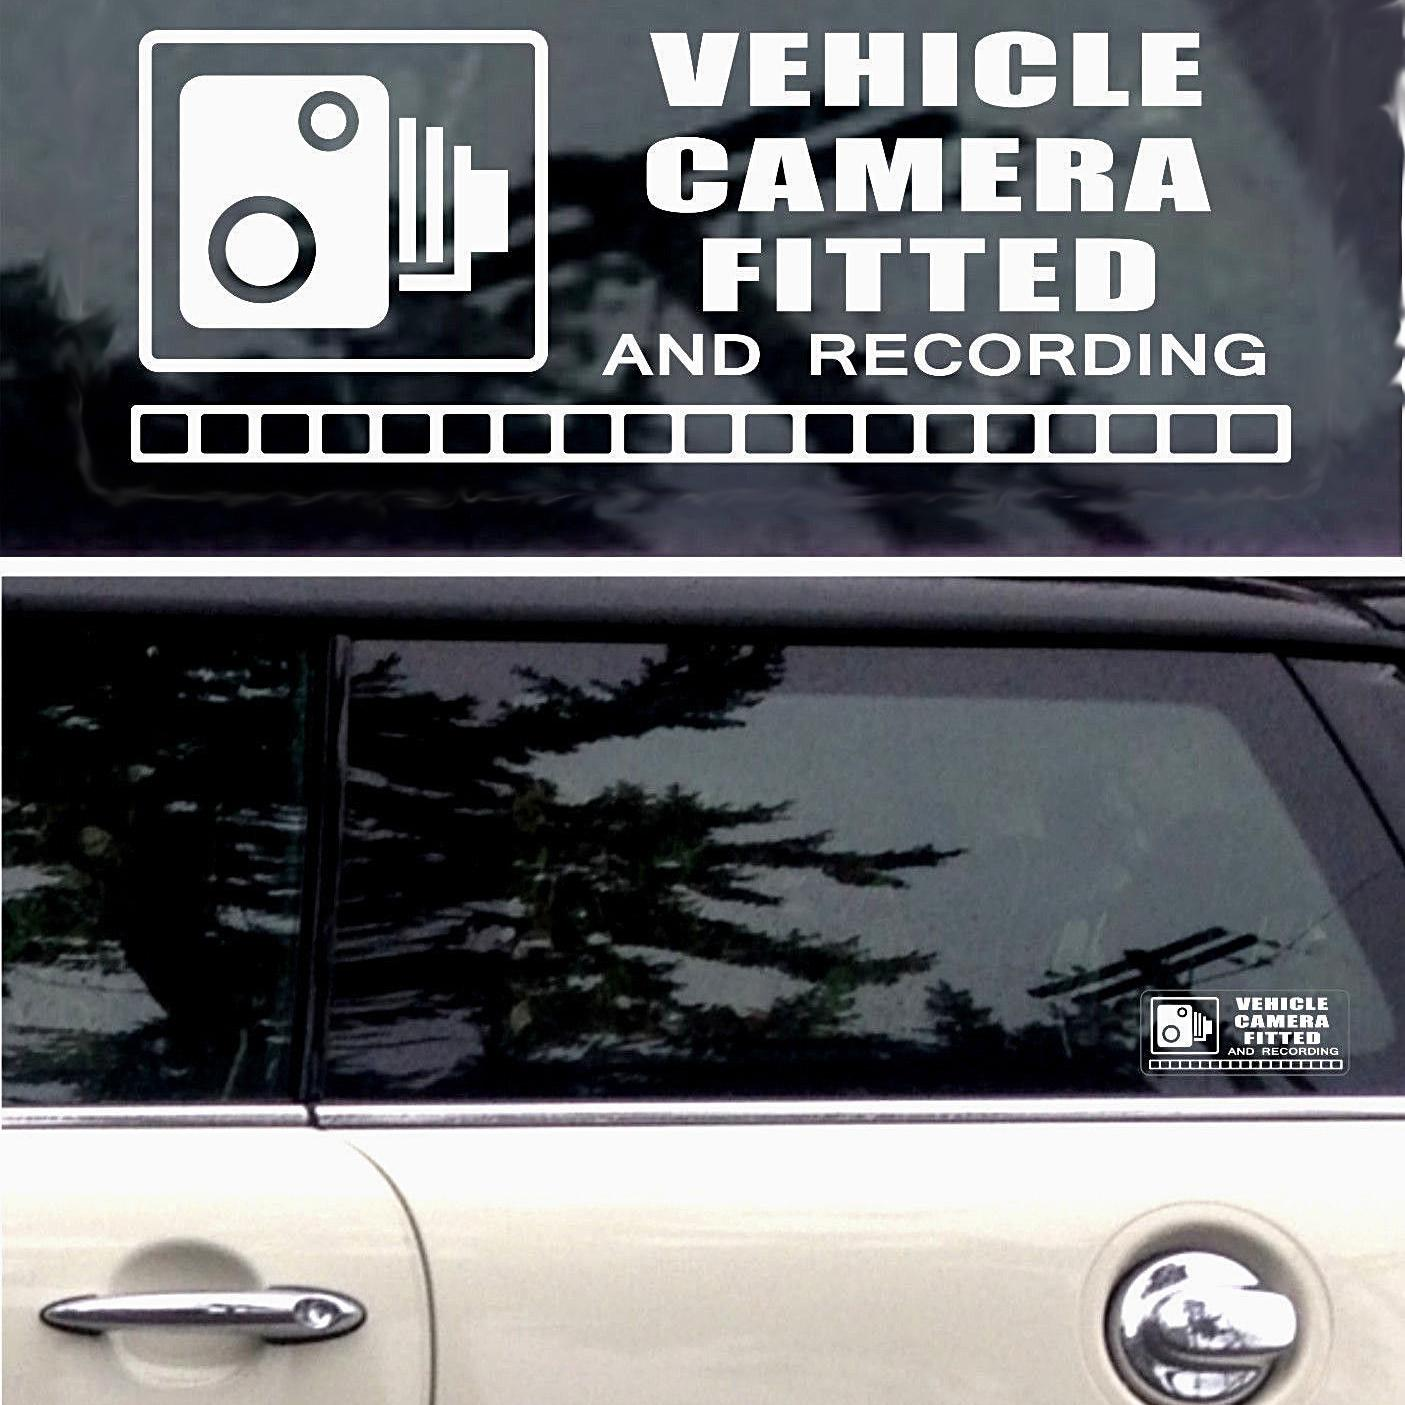 2019 mirror warning stickers cctv video camera recording car vehicle window sign vinyl car wrap decor decals from xymy777 3 92 dhgate com